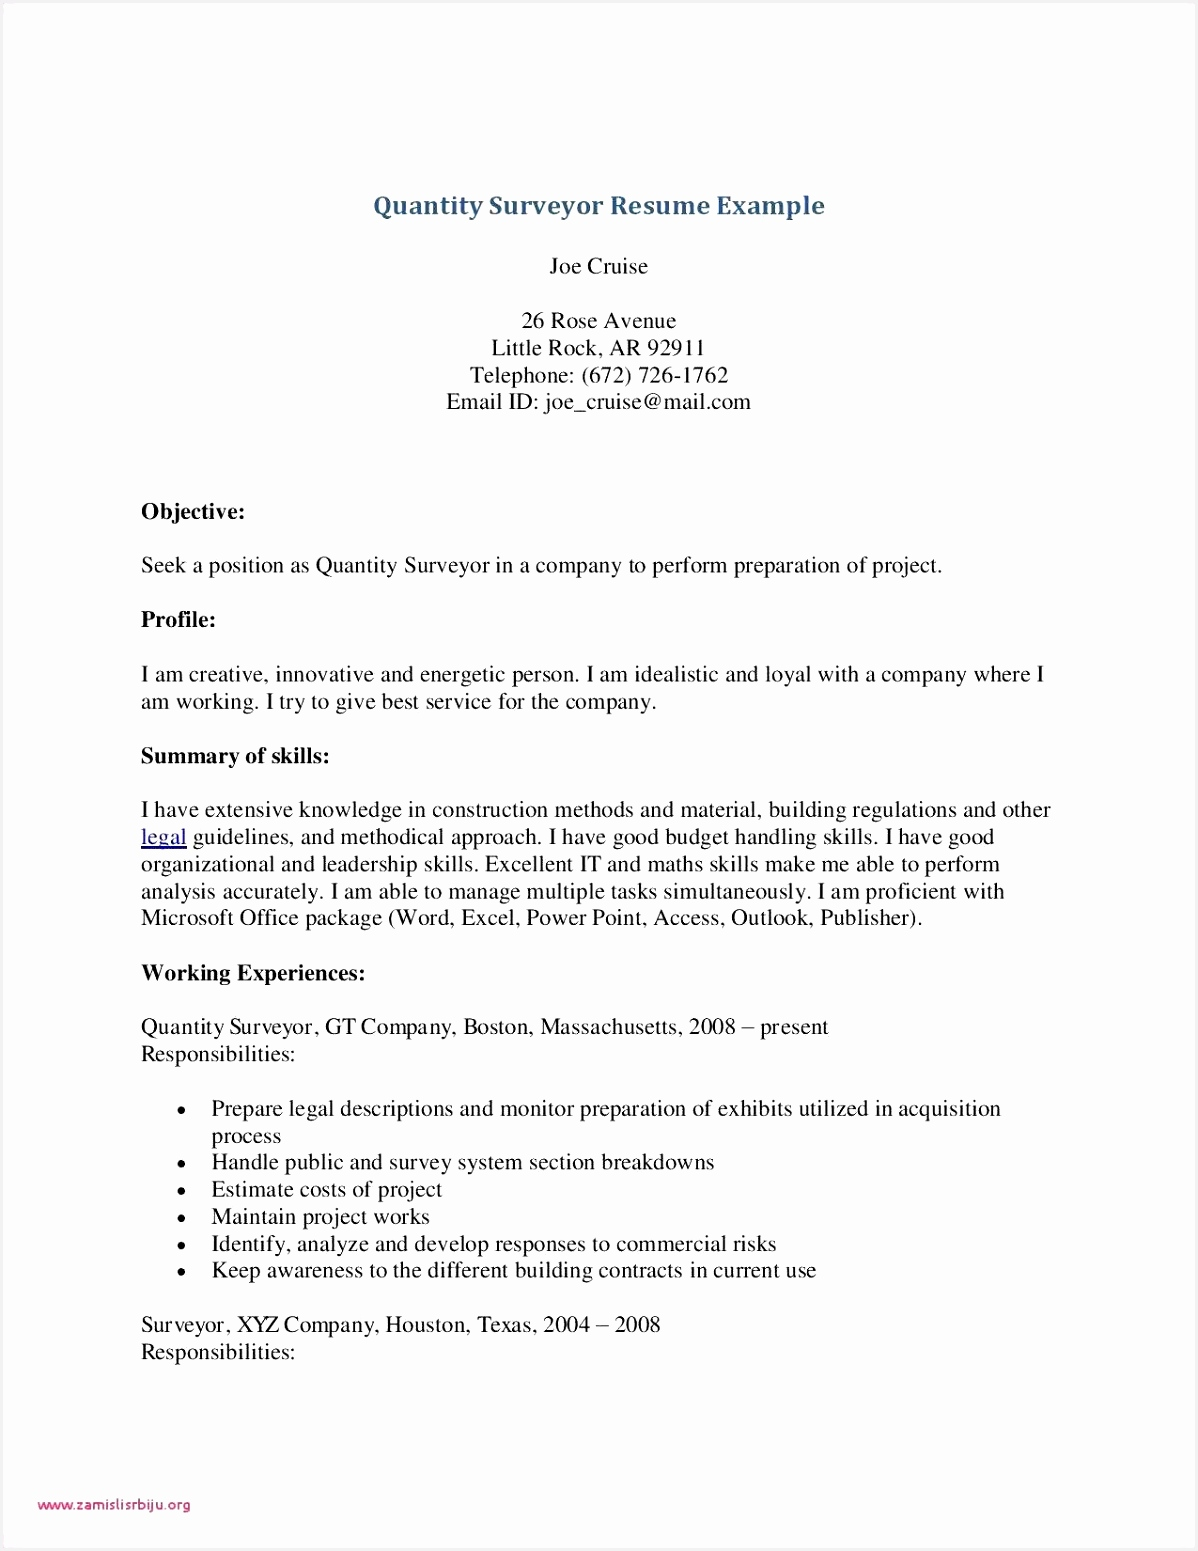 Resume Sample Engineer New Cover Letter For Civil Engineer 0d Land Surveyor Resume Preferred 155111982gkfa